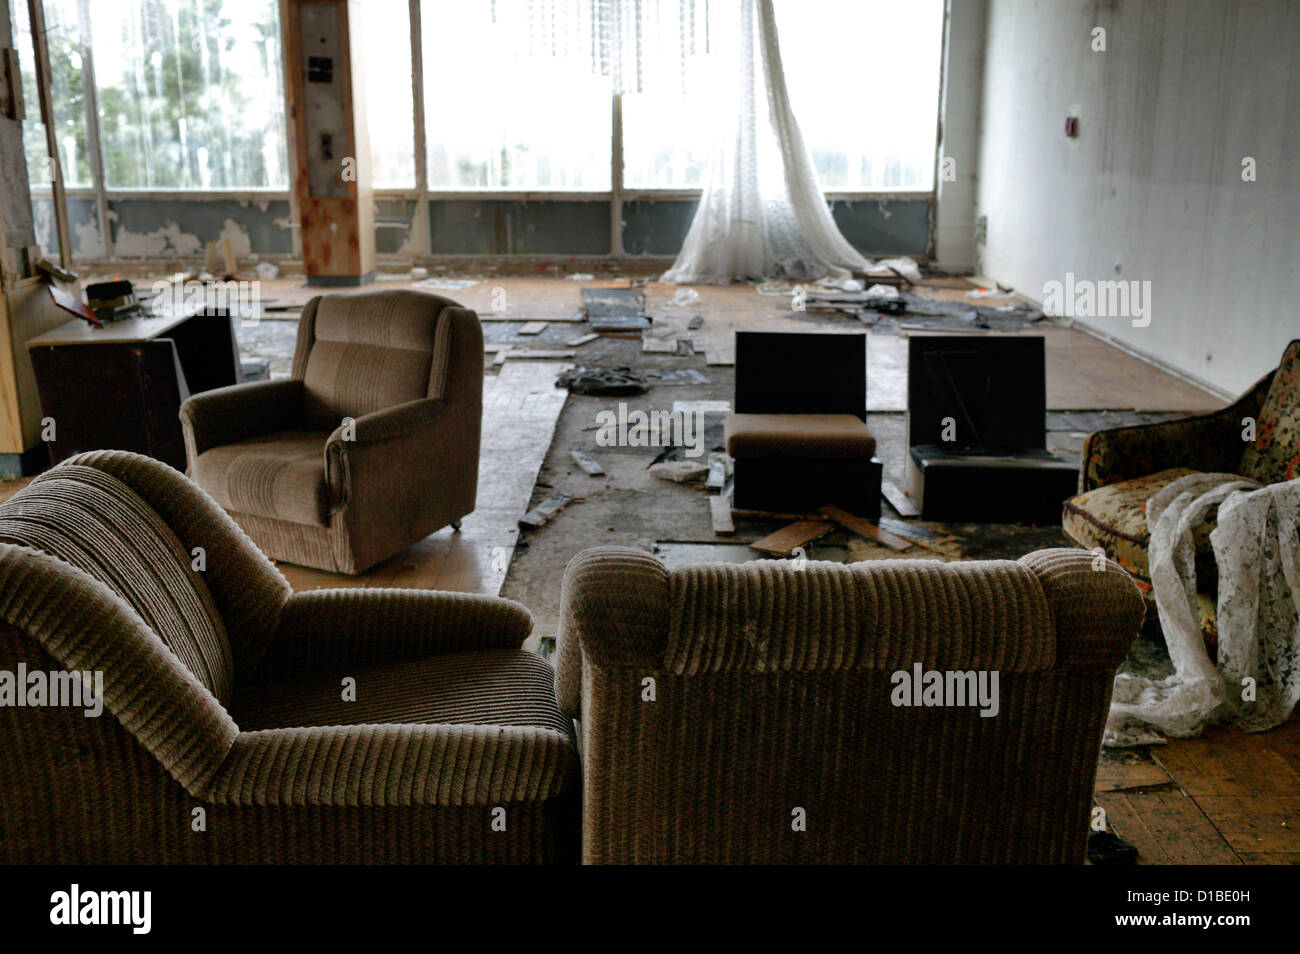 sofa army germany cheap sofas tampa ms wald back in the old abandoned furniture